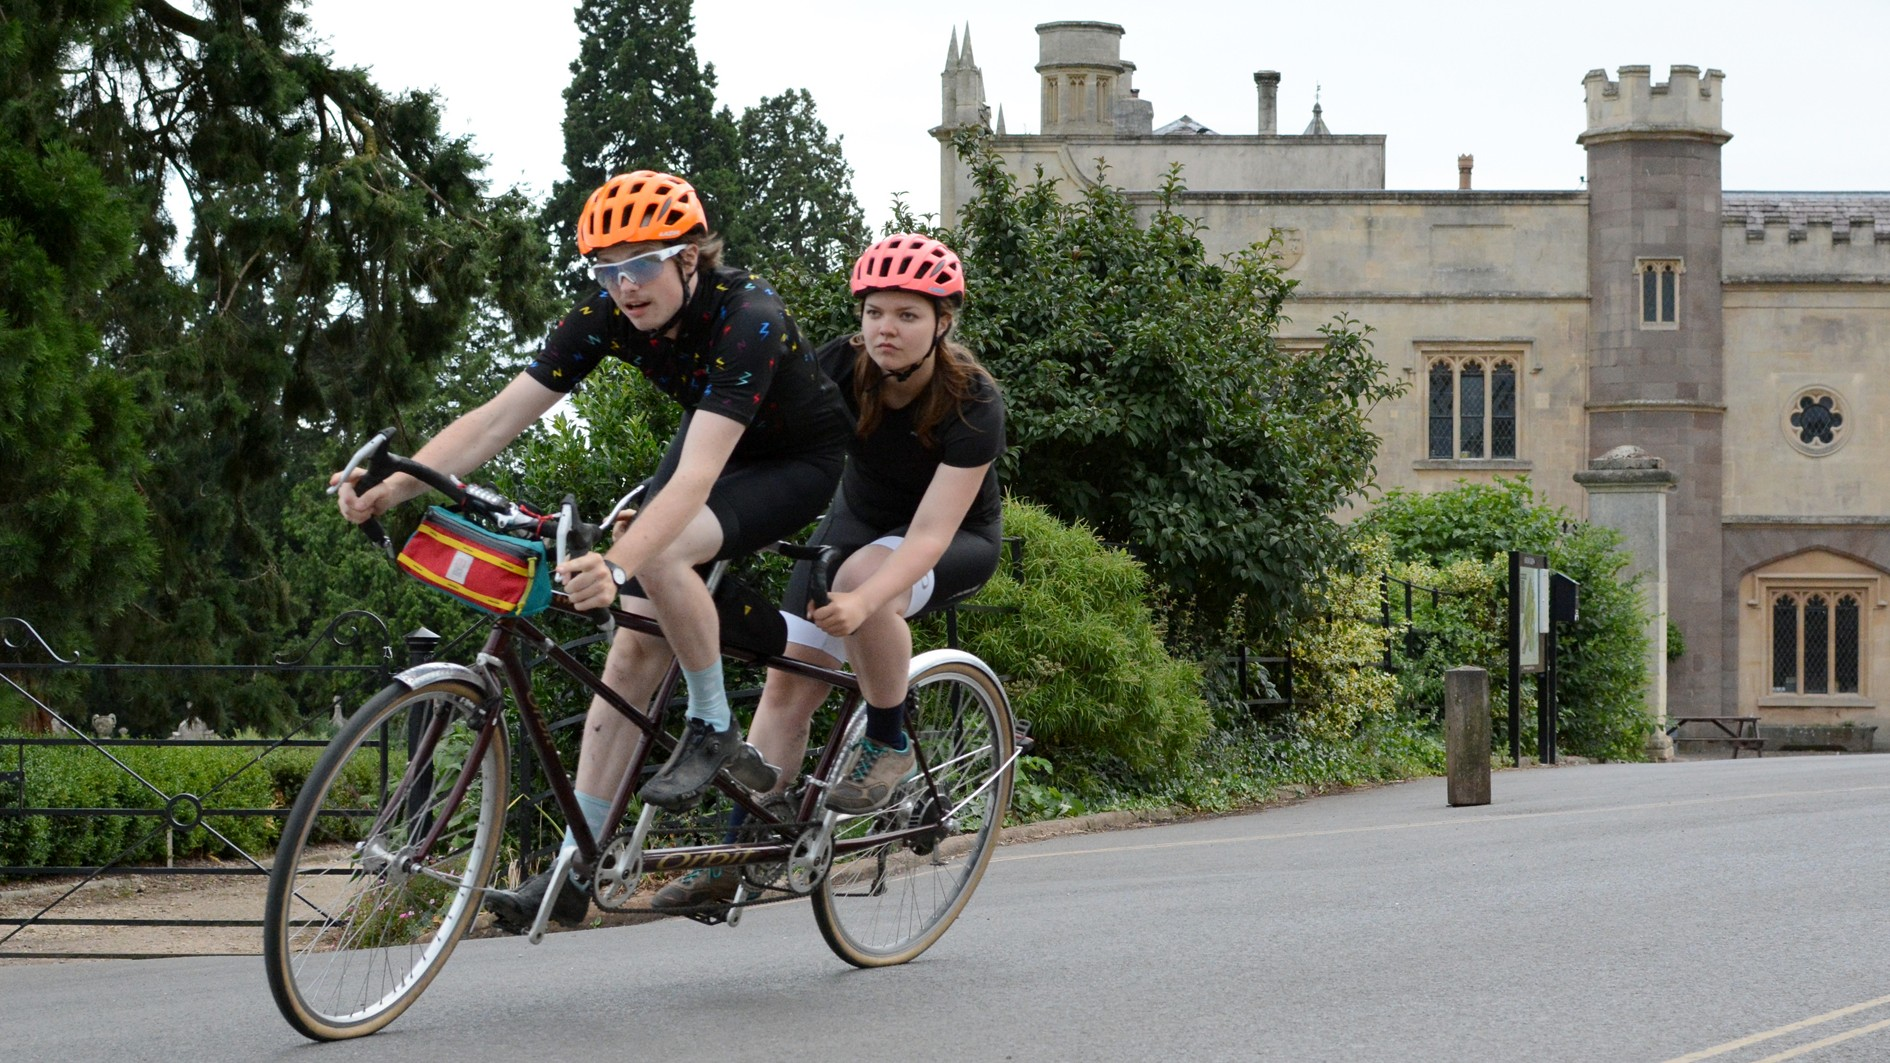 I've spent the last few months riding a tandem with my girlfriend, Laura and it's the most fun I've had on a bike in years